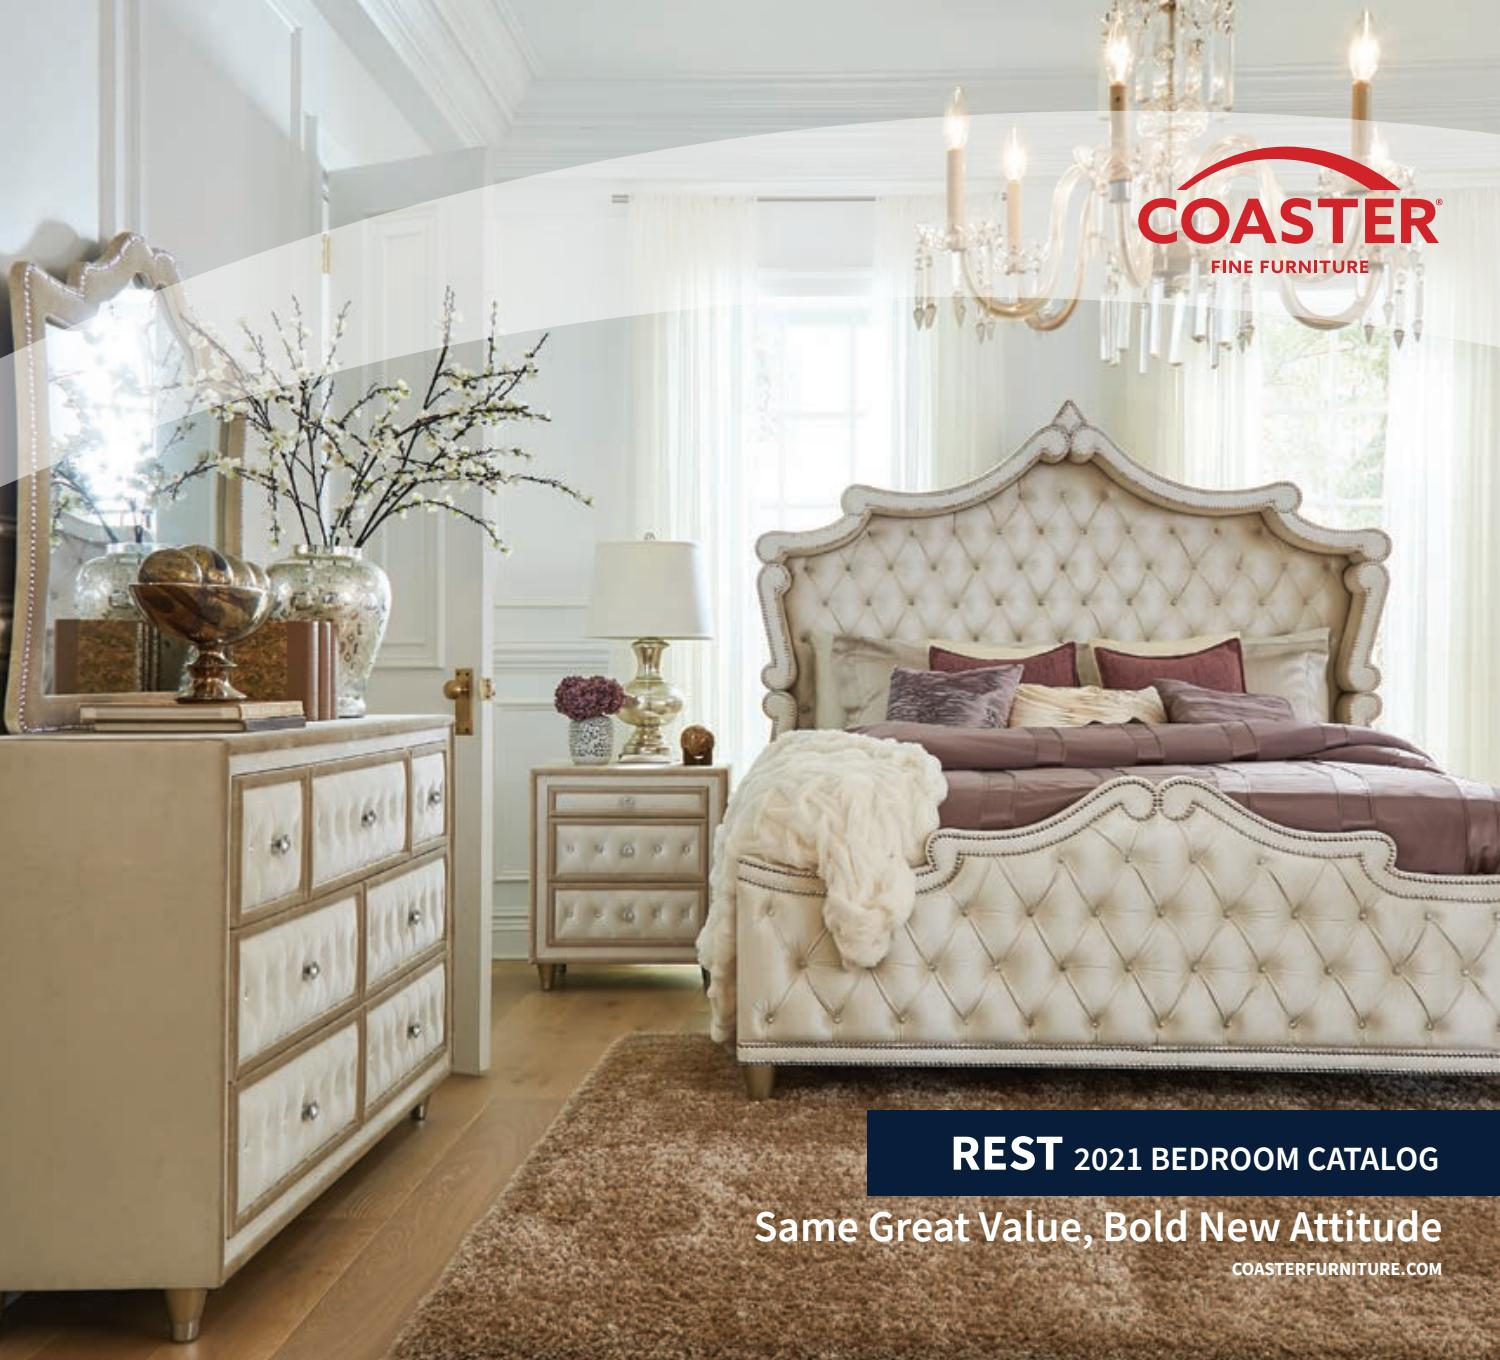 Coaster 2021 Bedroom Catalog By Coaster Company Of America Issuu Download coaster bedroom furniture